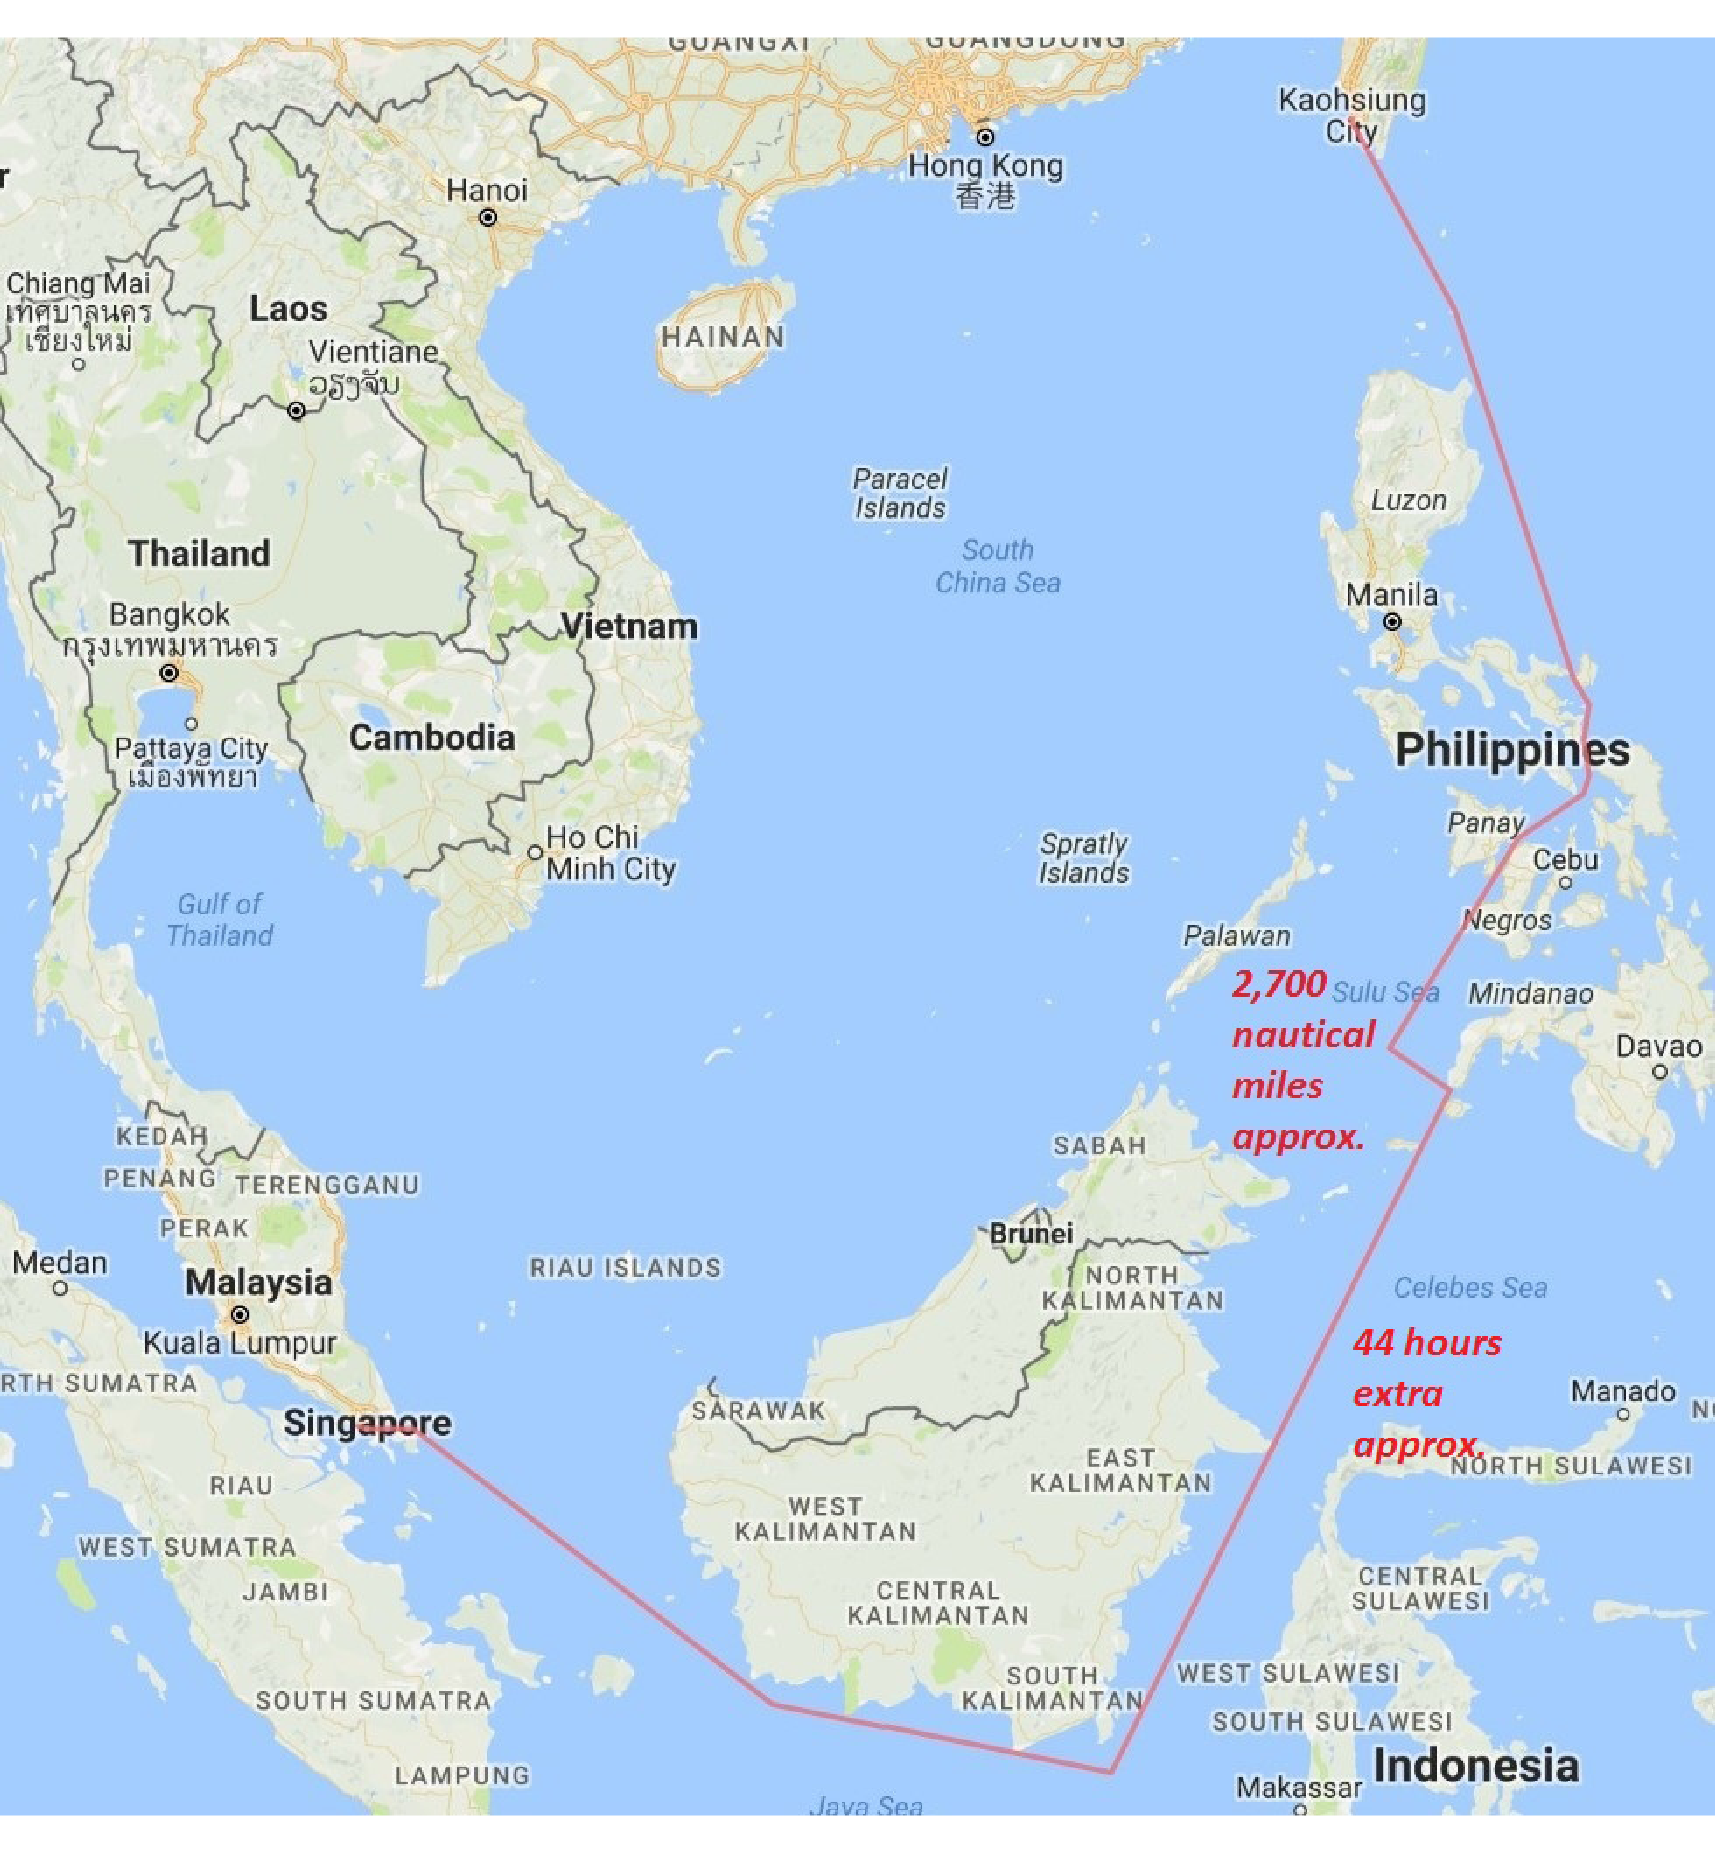 Map Of Asia Seas.A Balanced Threat Assessment Of China S South China Sea Policy